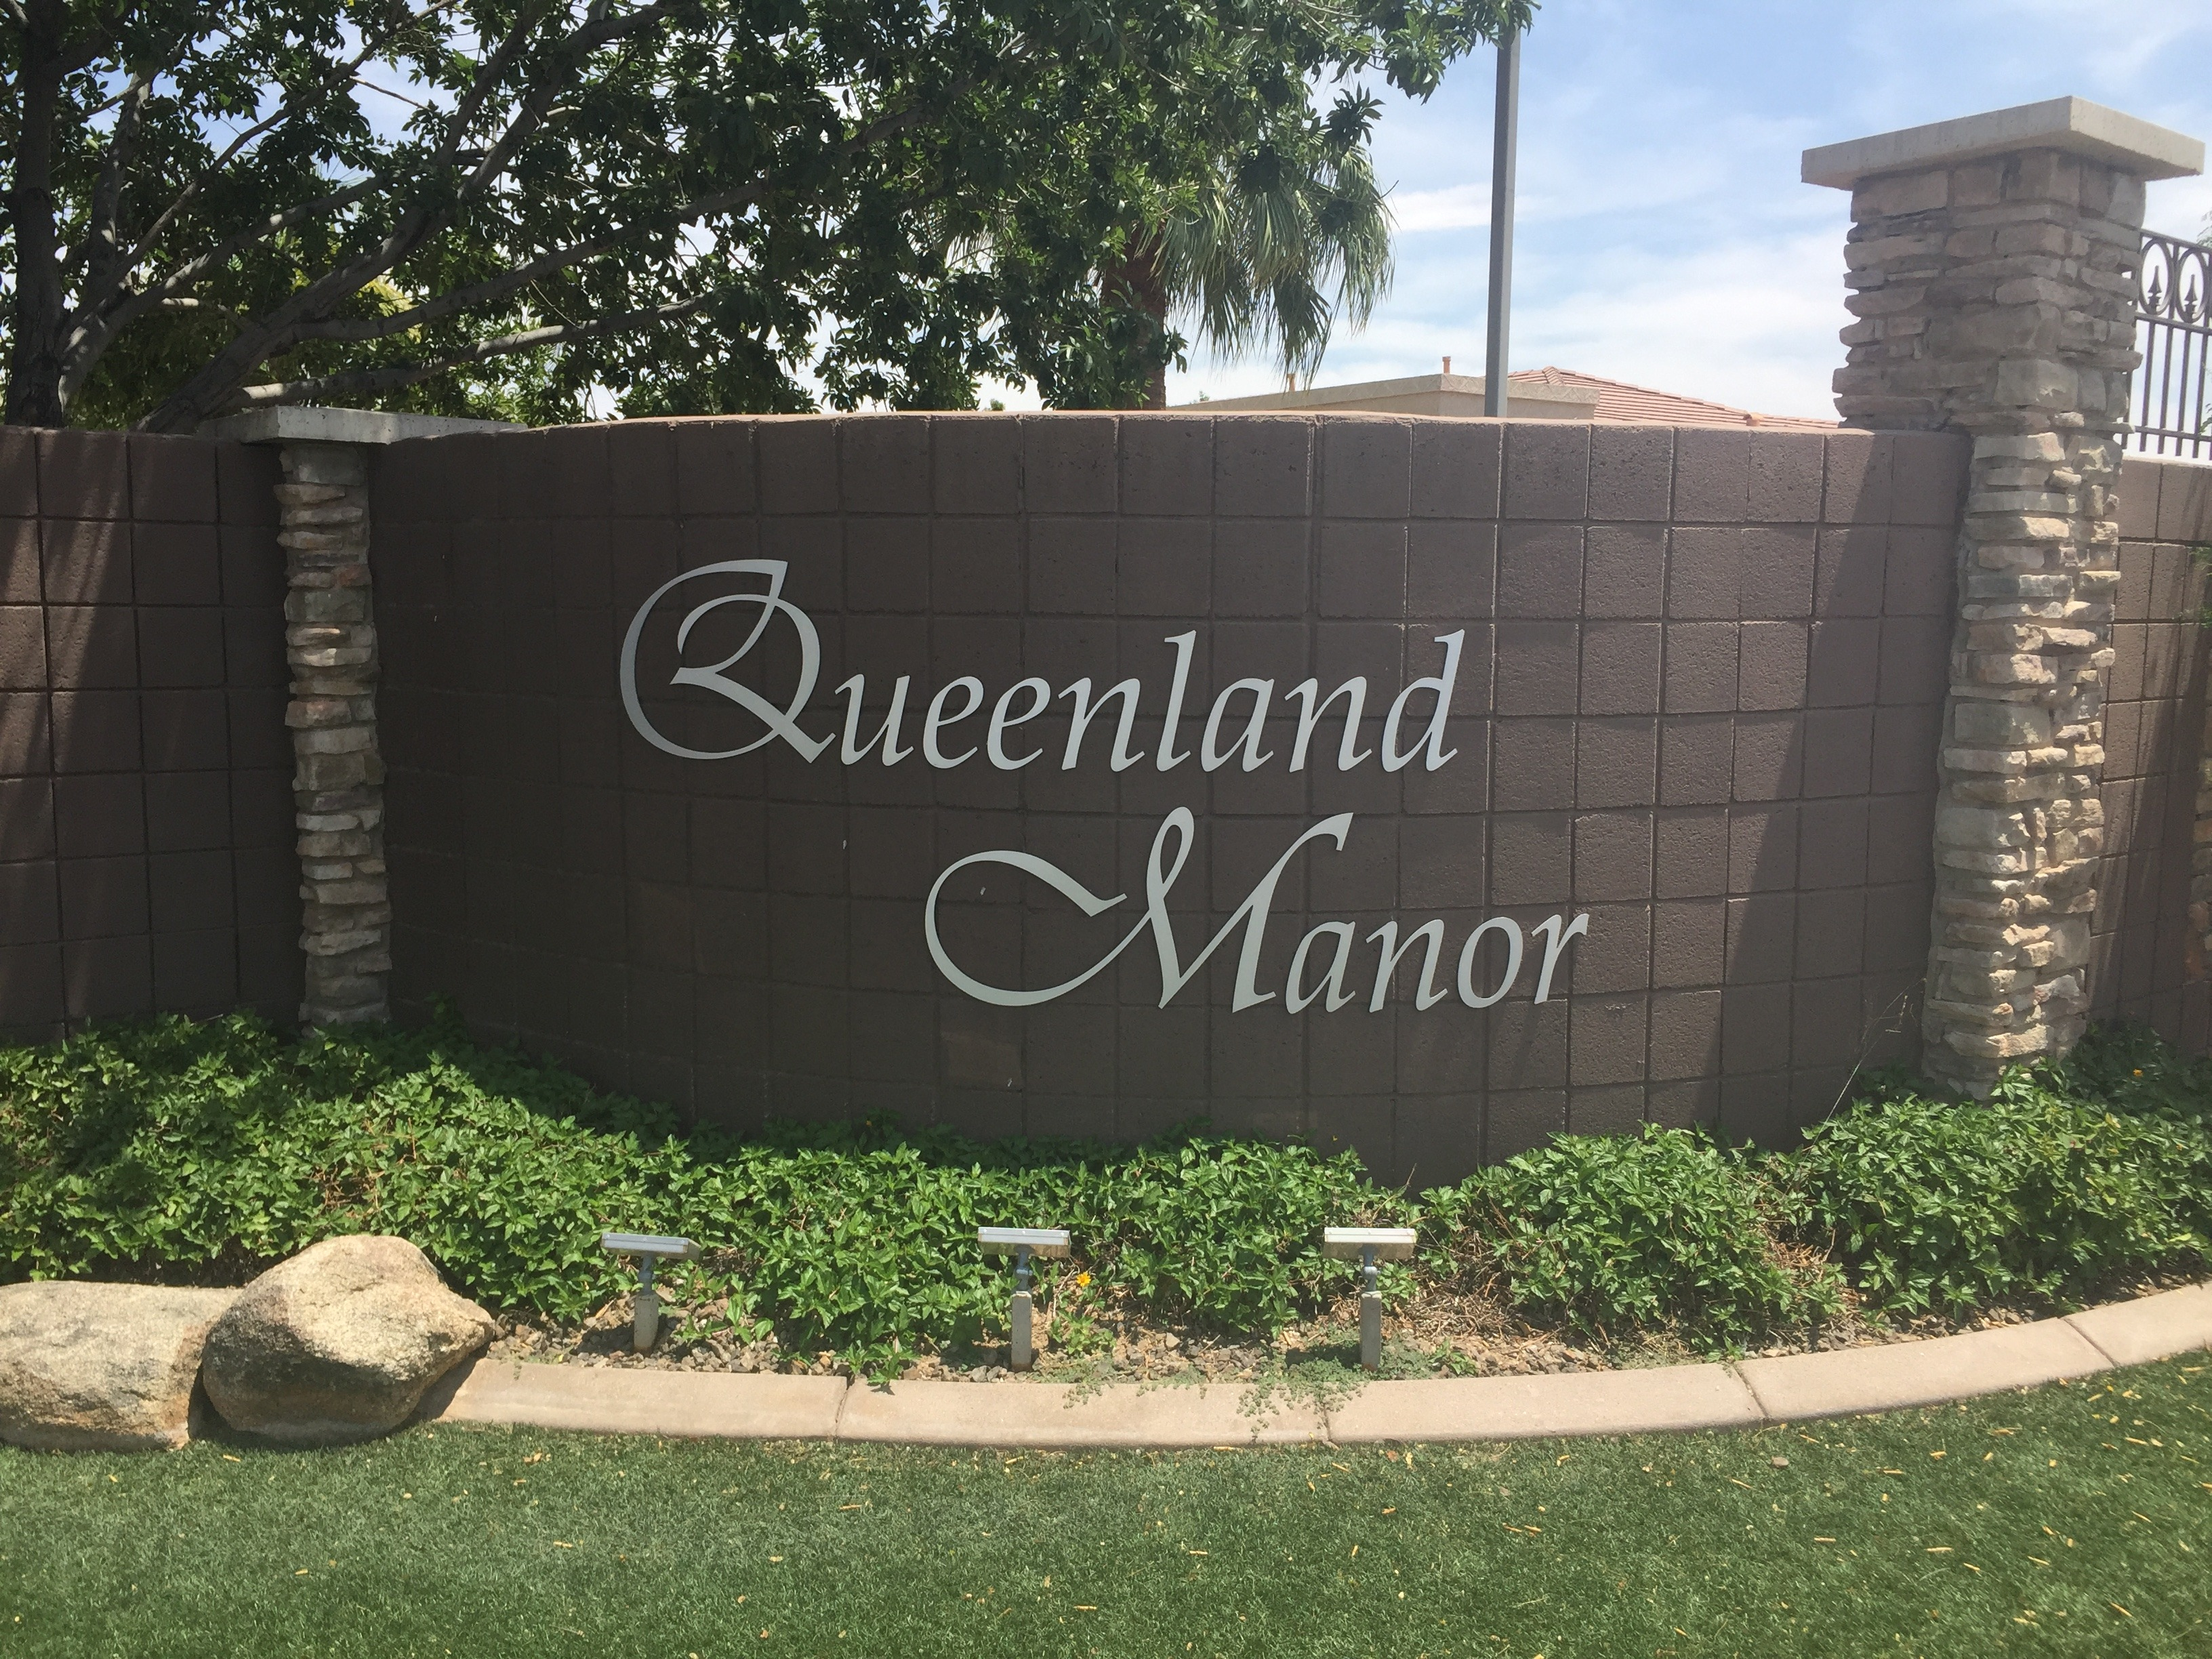 Queenland Manor